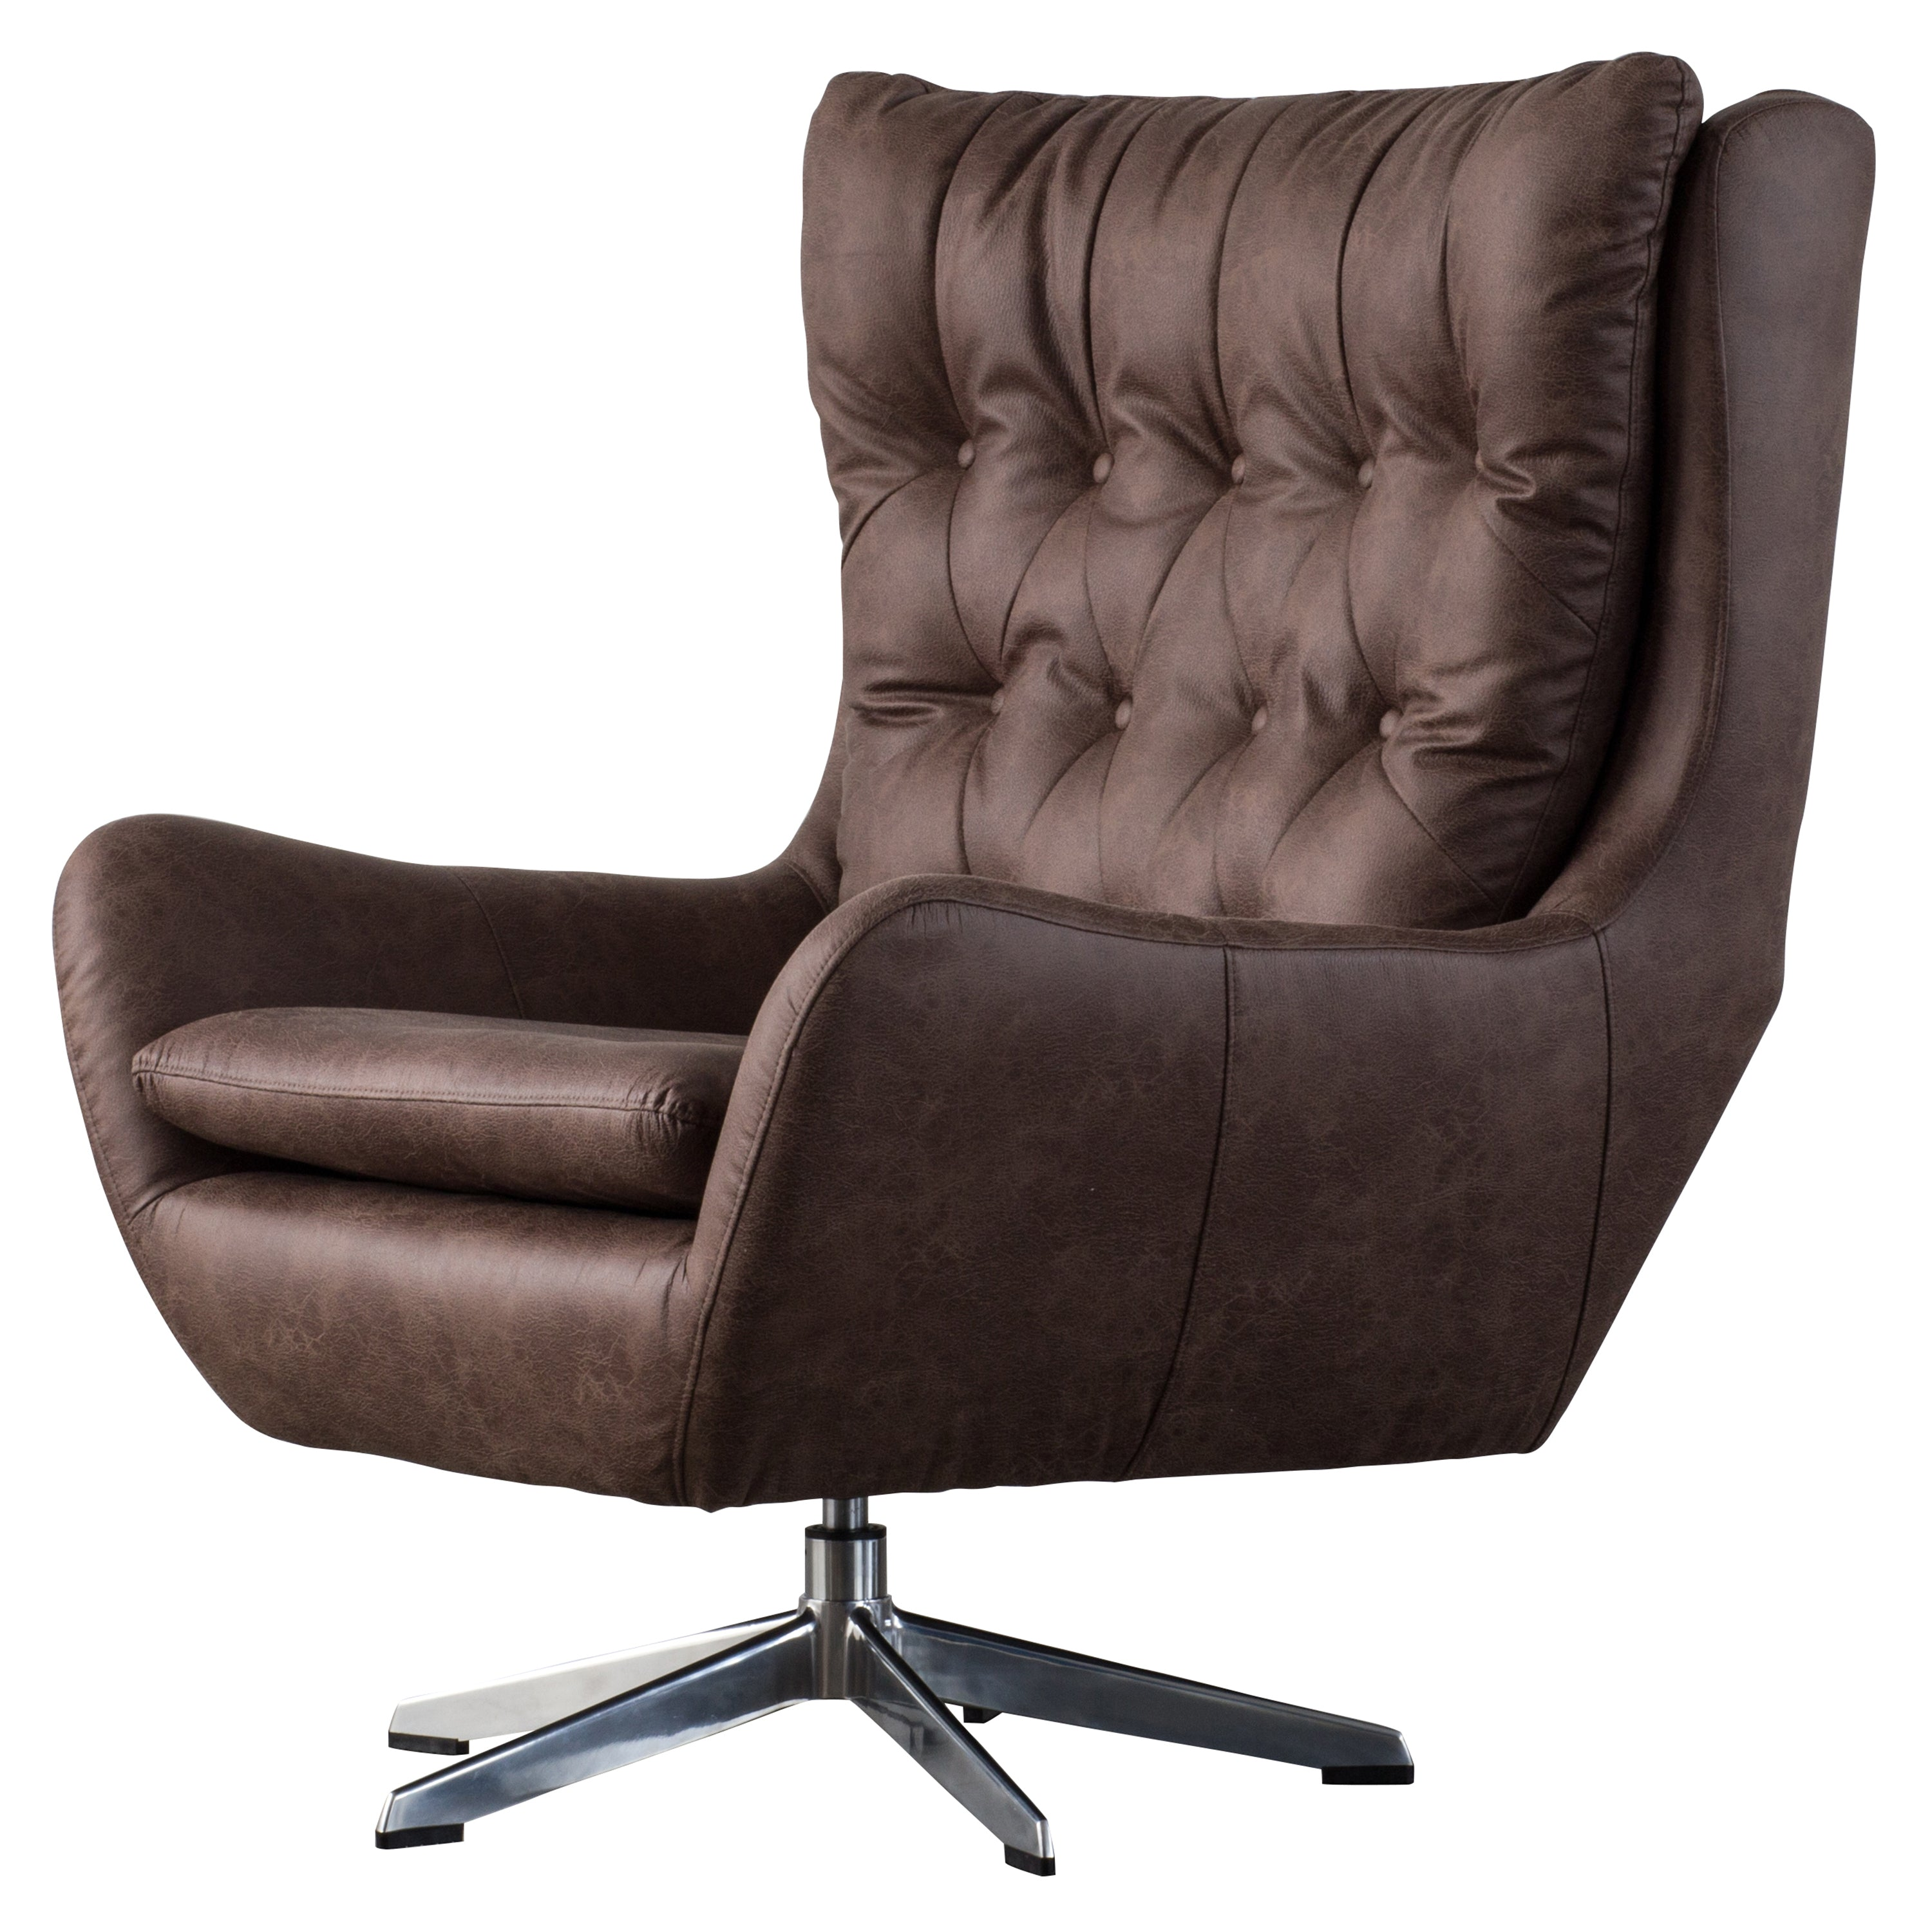 Buy New Pacific Direct 9900016 277 Skylar Pu Leather Swivel Chair Devore Brown At Contemporary Furniture Warehouse